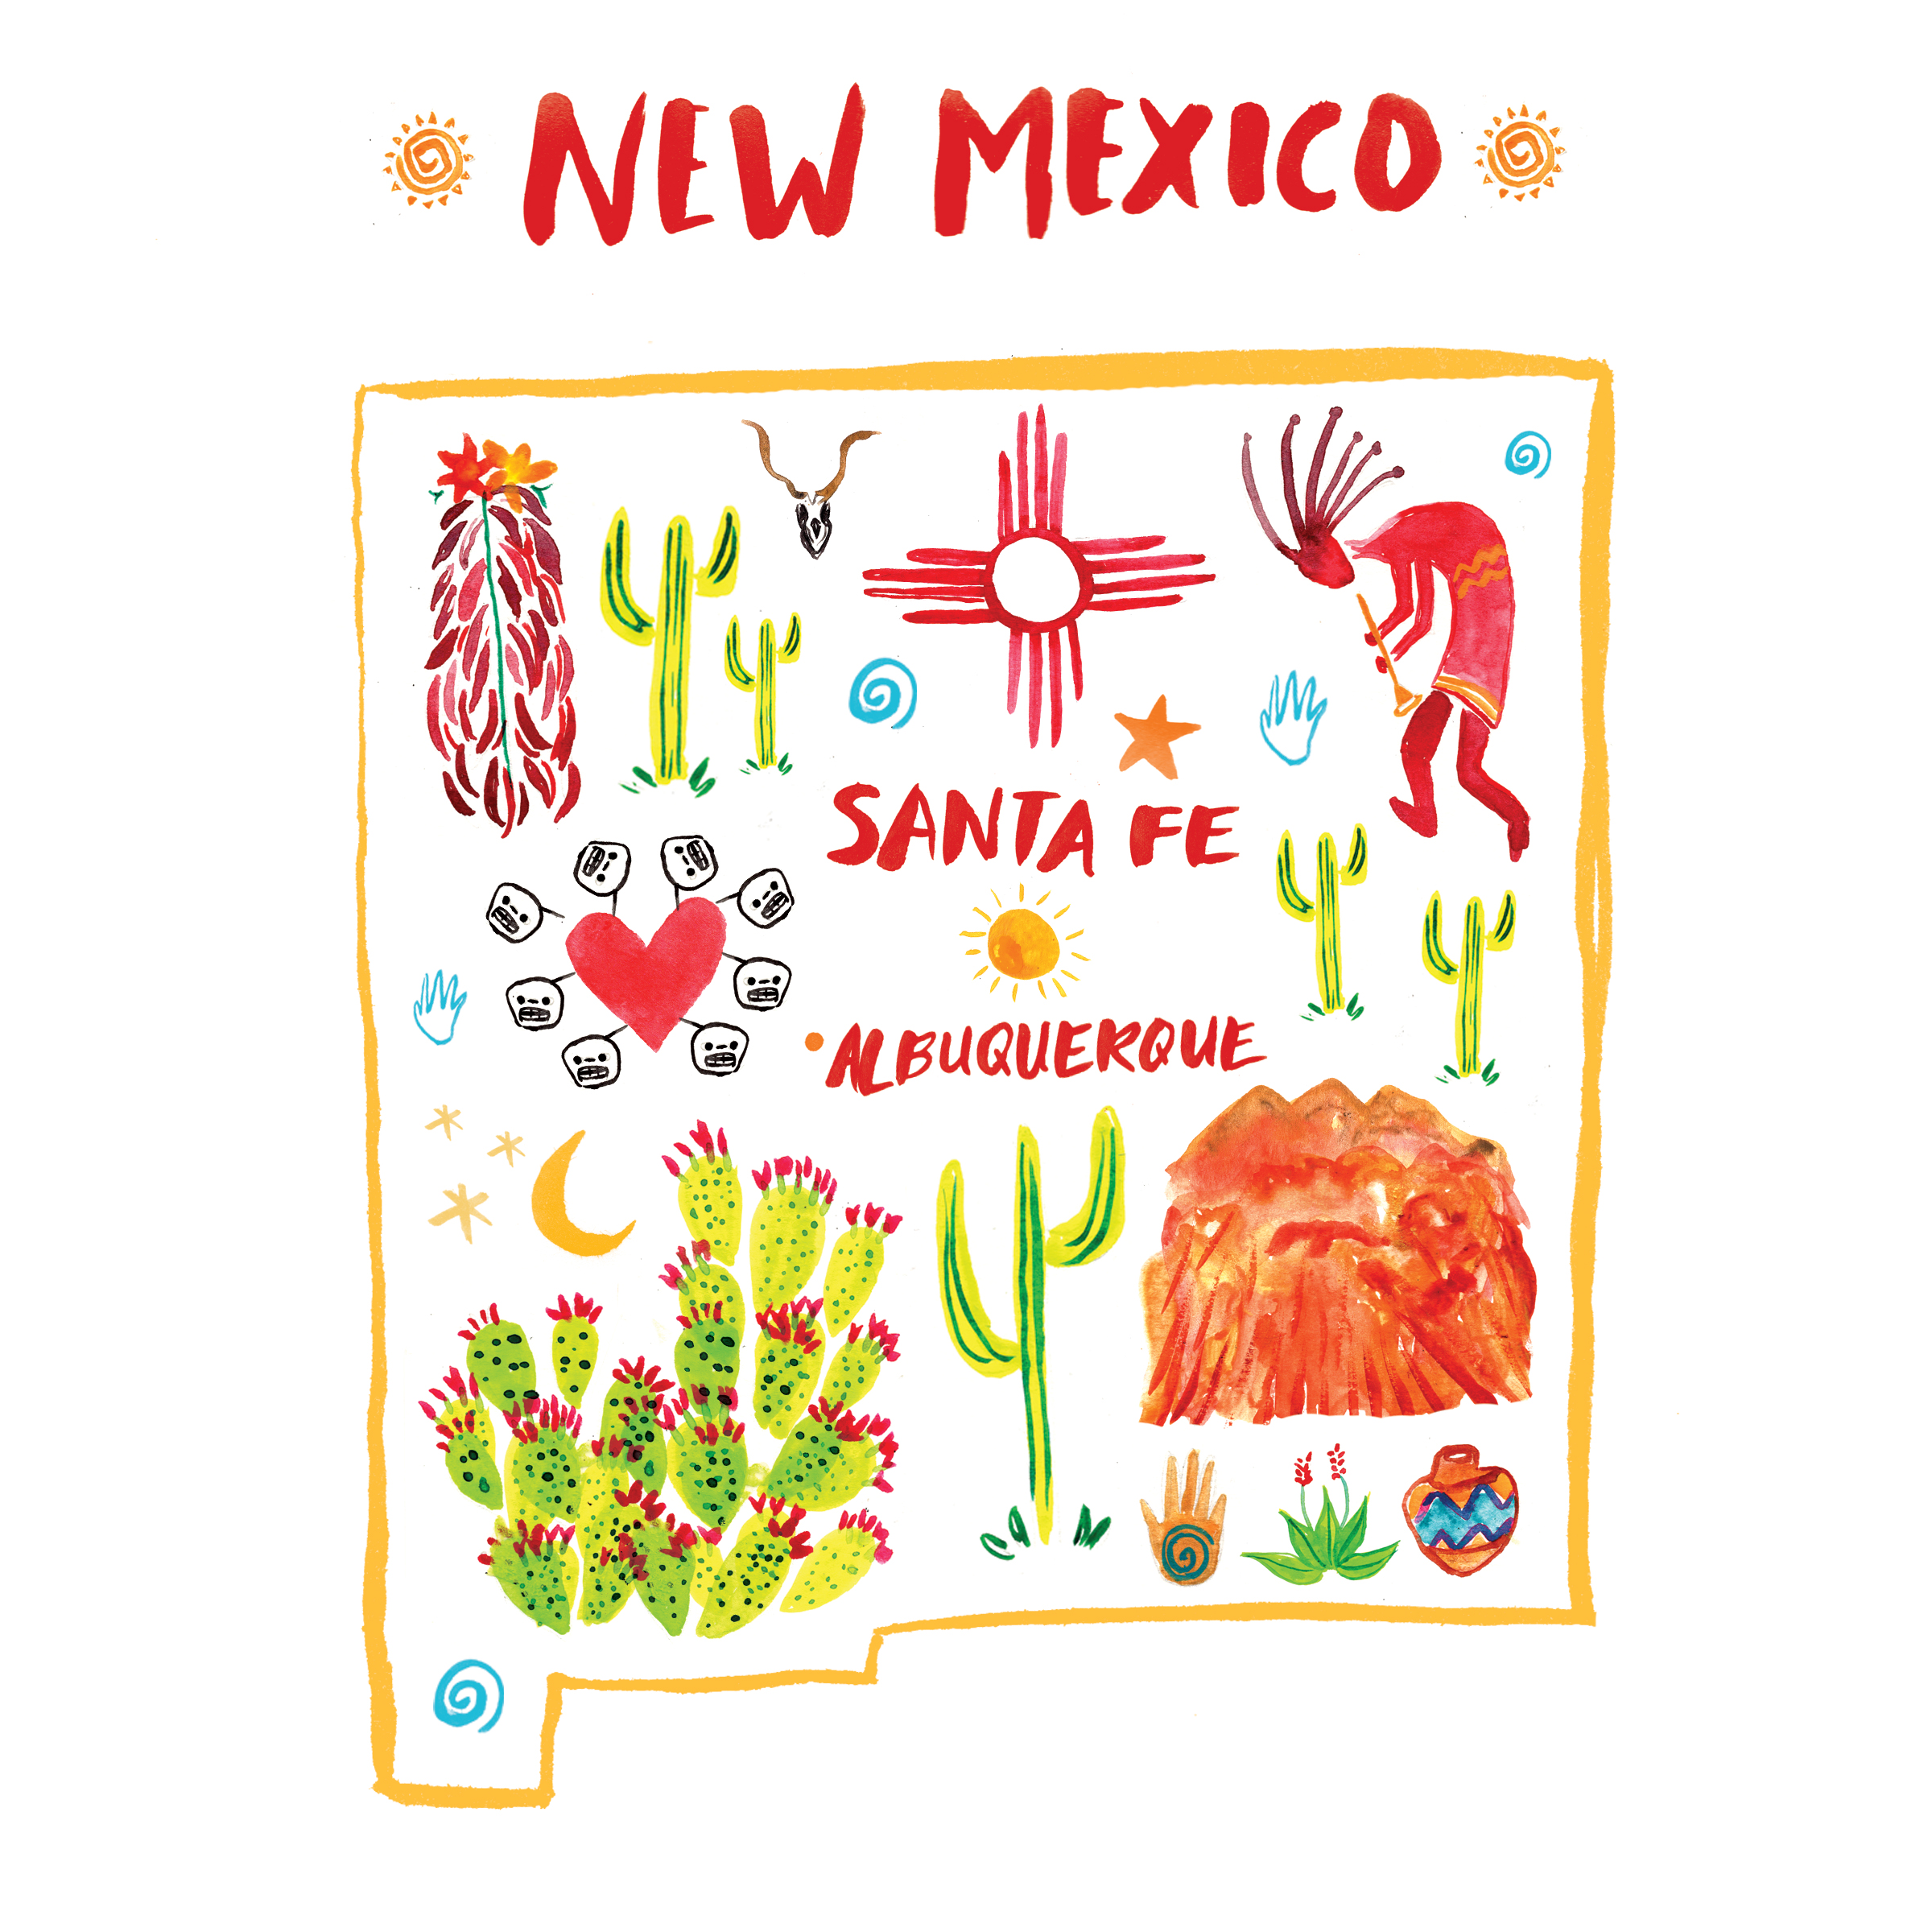 NEW MEXICO - Oh New Mexico, you truly are the Land of Enchantment. I saved one of my favorite places for last. 🏜 New Mexico felt like a wonderful dream with inspiration, color and culture at every corner. From the killer retro signs and Frontier Restaurant in Albuquerque; the amazing Georgia O'keefe museum and the shopping of handmade crafts in Santa Fe all left me filled with love and life. 🙌🏼 I can not wait to return one day to again climb the Sandia Mountain and be enchanted once more. 30/30 ✨🌵✨ That concludes my 30 places before 30! There are actually 4 more states that I wanted to include in this series but since that would make it over 30 places I plan to complete them after my birthday celebration! So stay tuned my friends! I want to thank everyone who followed along and for all the positive feed back. ✌🏼 There are so many different places all over the world that affect us in positive ways and that makes us all have something in common: LOVE.PLACES: SANTA FE, ALBUQUERQUE